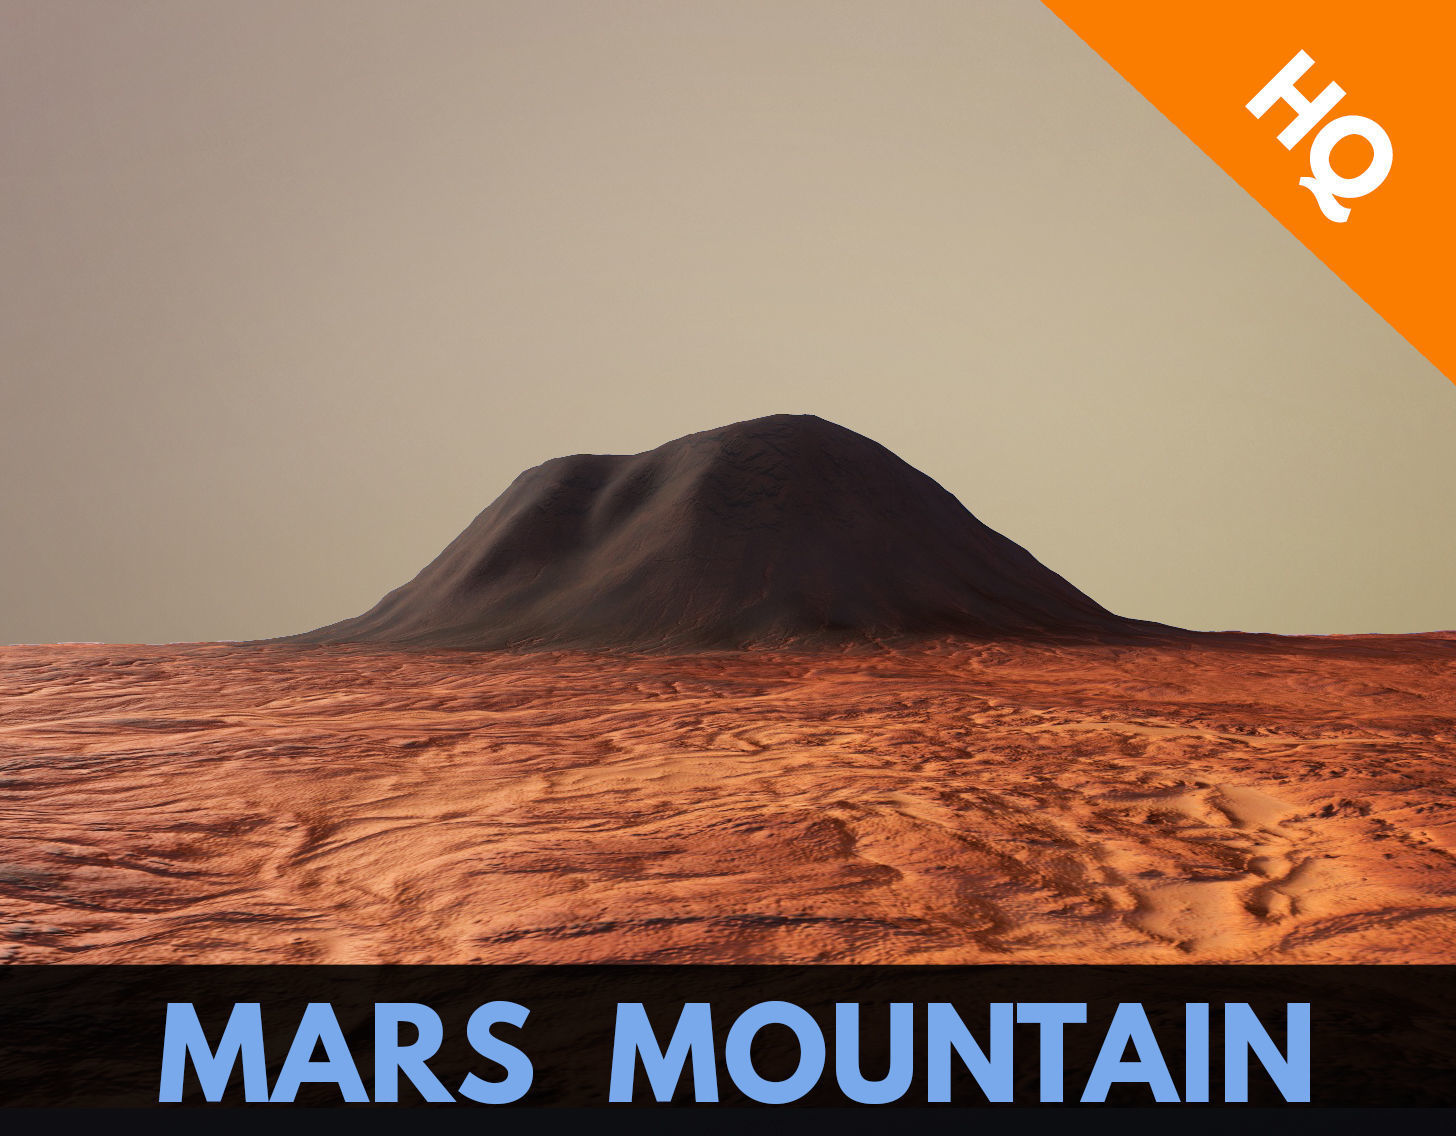 Mars Planet Mountain Terrain Landscape Desert Valley PBR 02